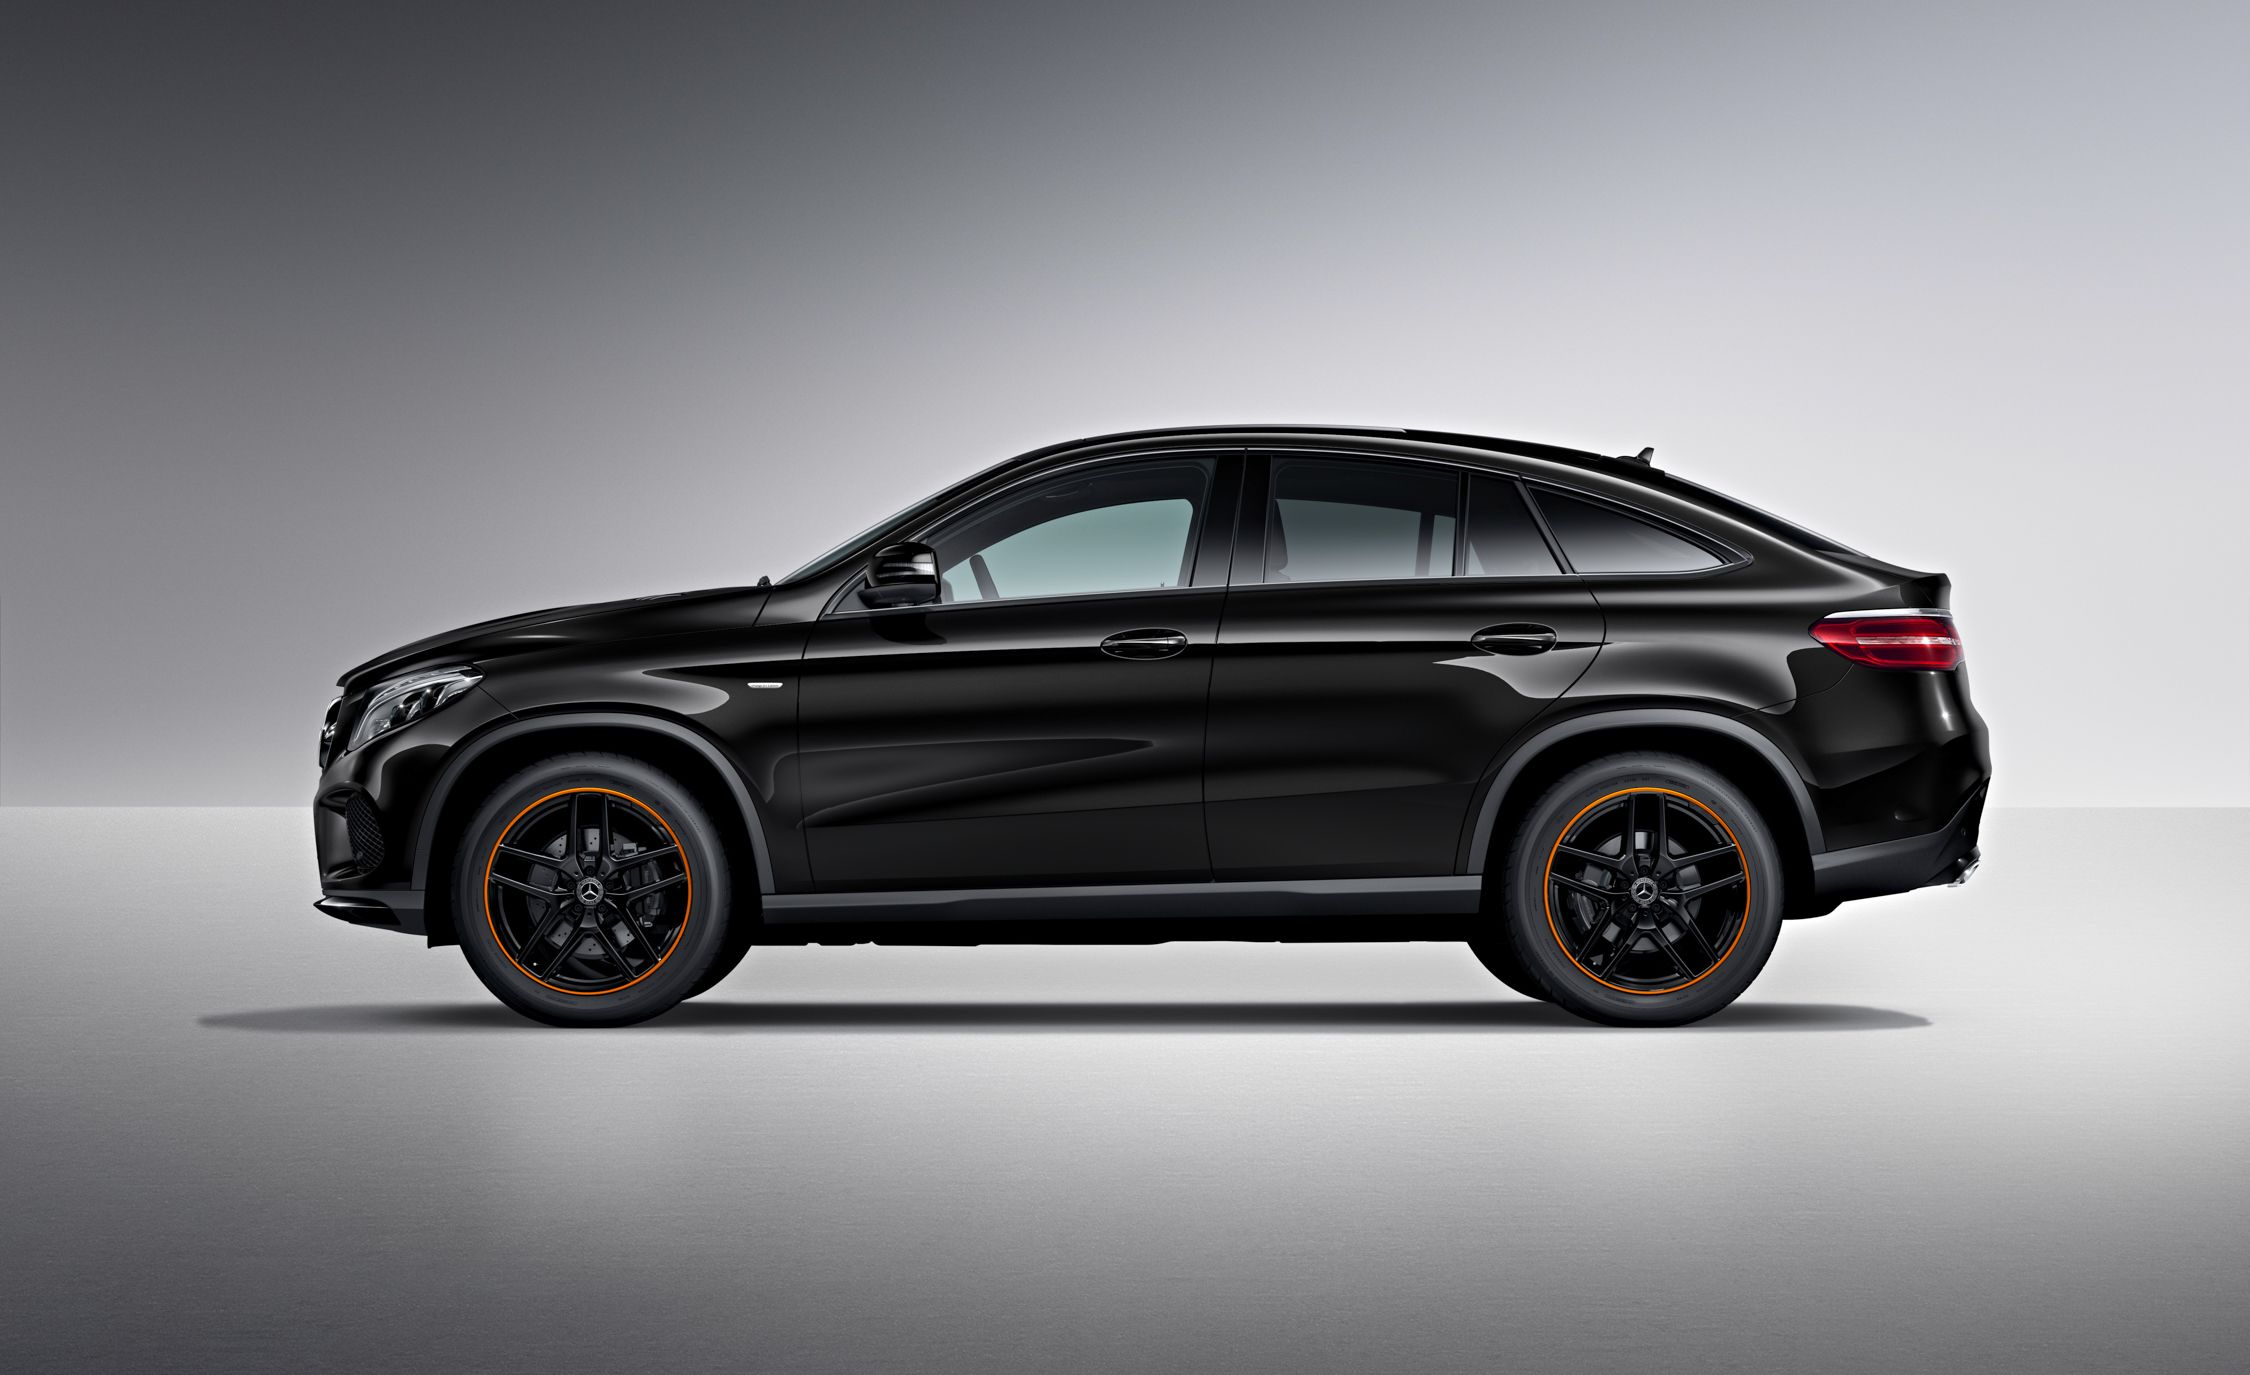 2019 Mercedes Amg Gle43 Coupe 4matic Gle63 S Reviews 66 Gmc Truck Wiring Diagram Price Photos And Specs Car